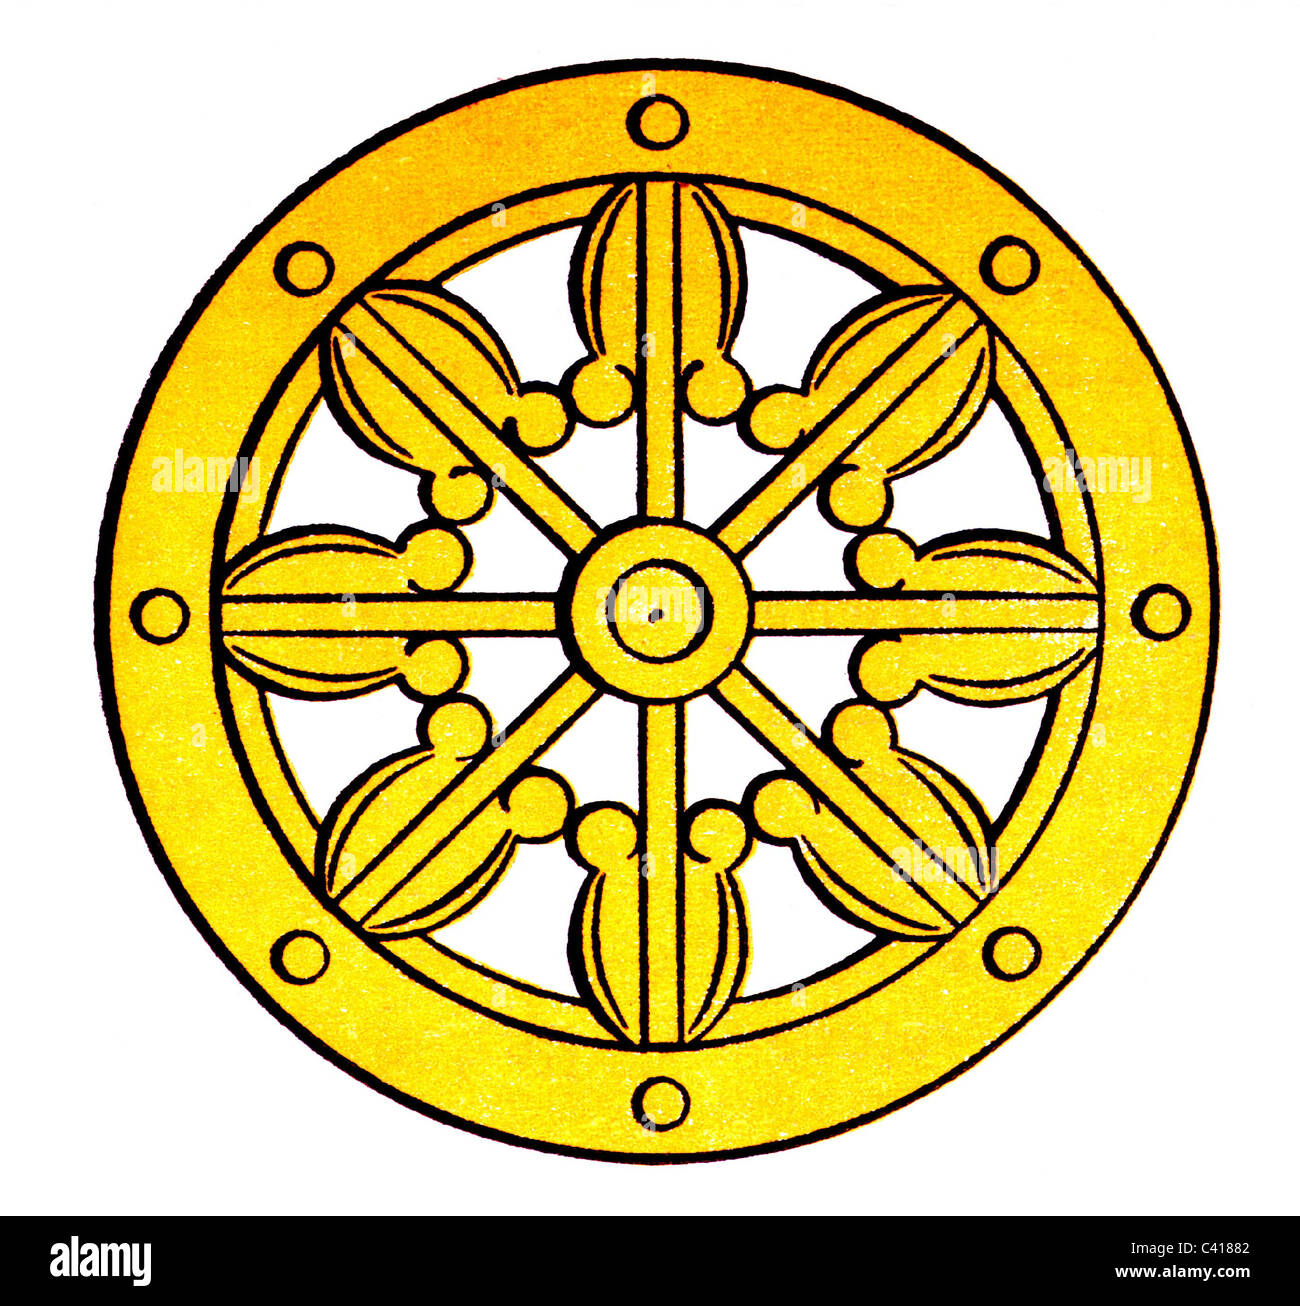 Religion Buddhism Wheel Of Law Dharmacakra Symbolizing The Path